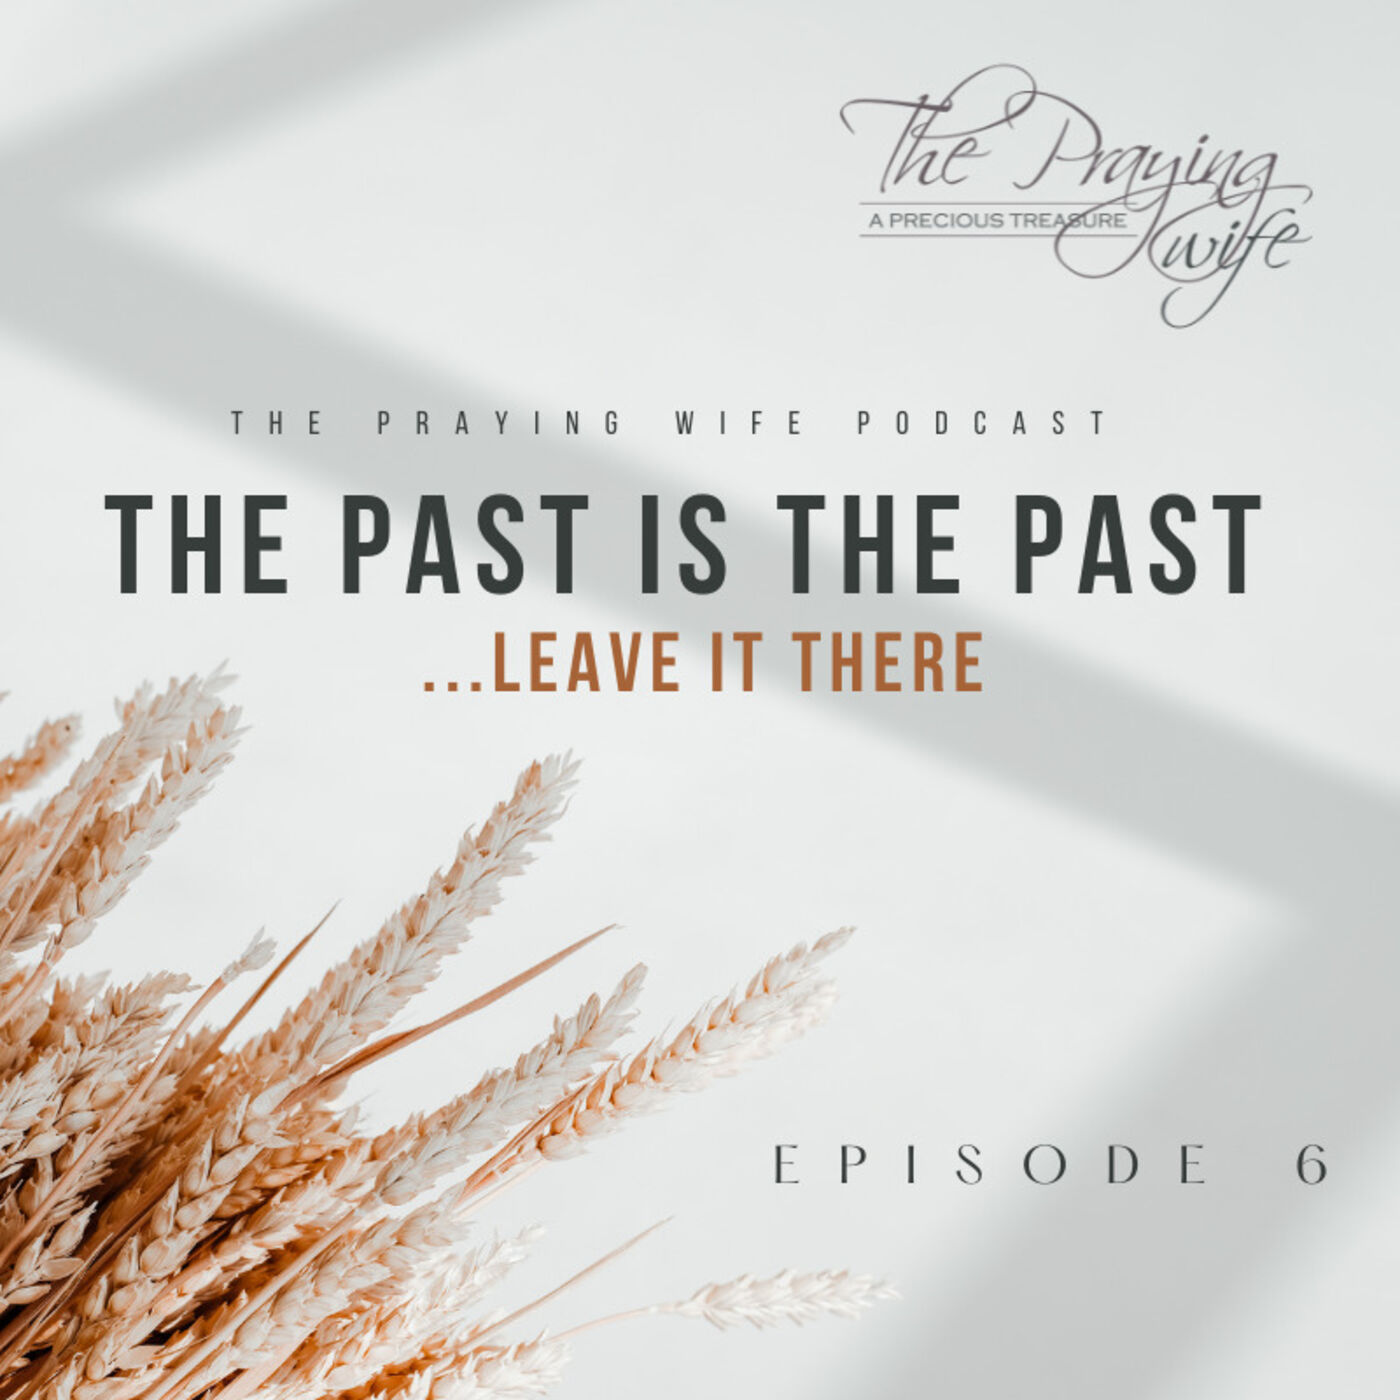 The Past is the Past - Leave it There